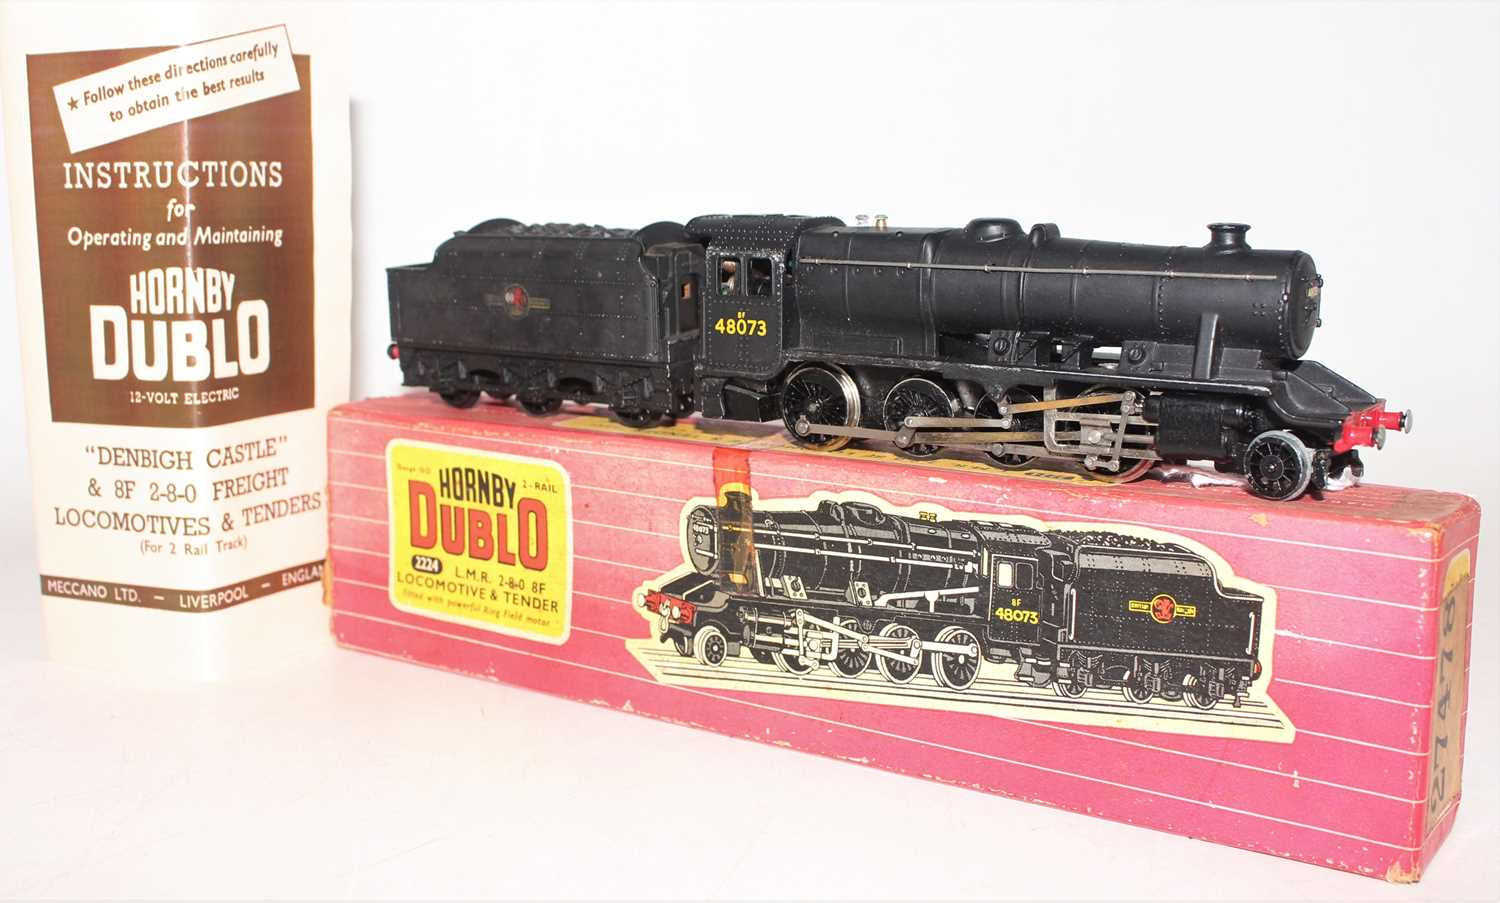 Hornby Dublo 2224 2-rail locomotive and tender 2-8-0 8F freight locomotive, BR 48073, ringfield - Image 2 of 4